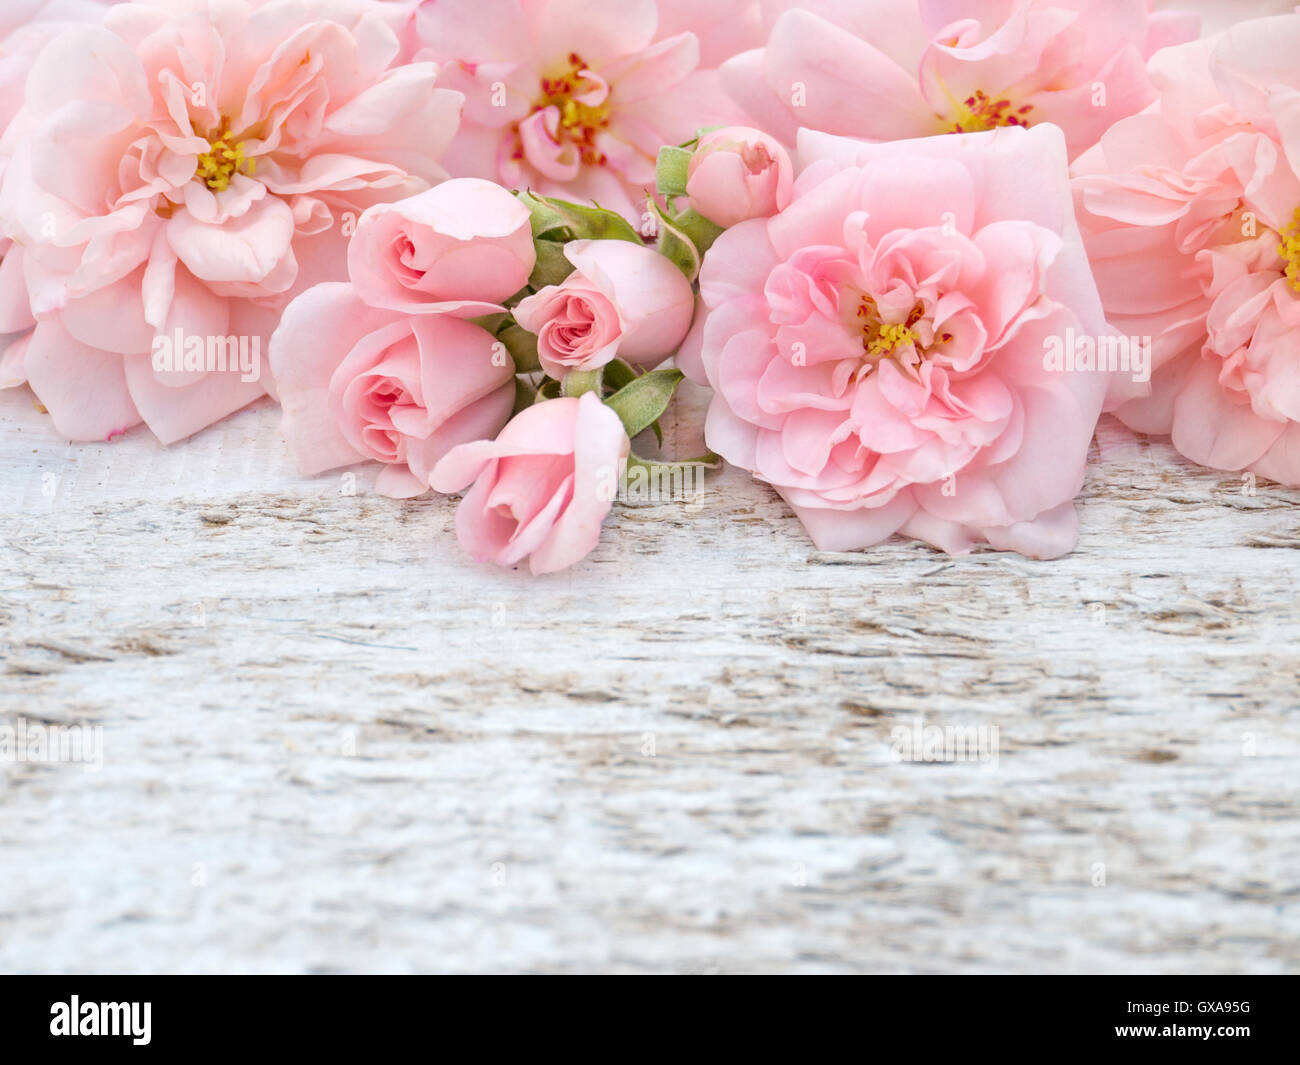 Pale Pink Roses And Buds Bouquet On The Rustic White Painted Stock